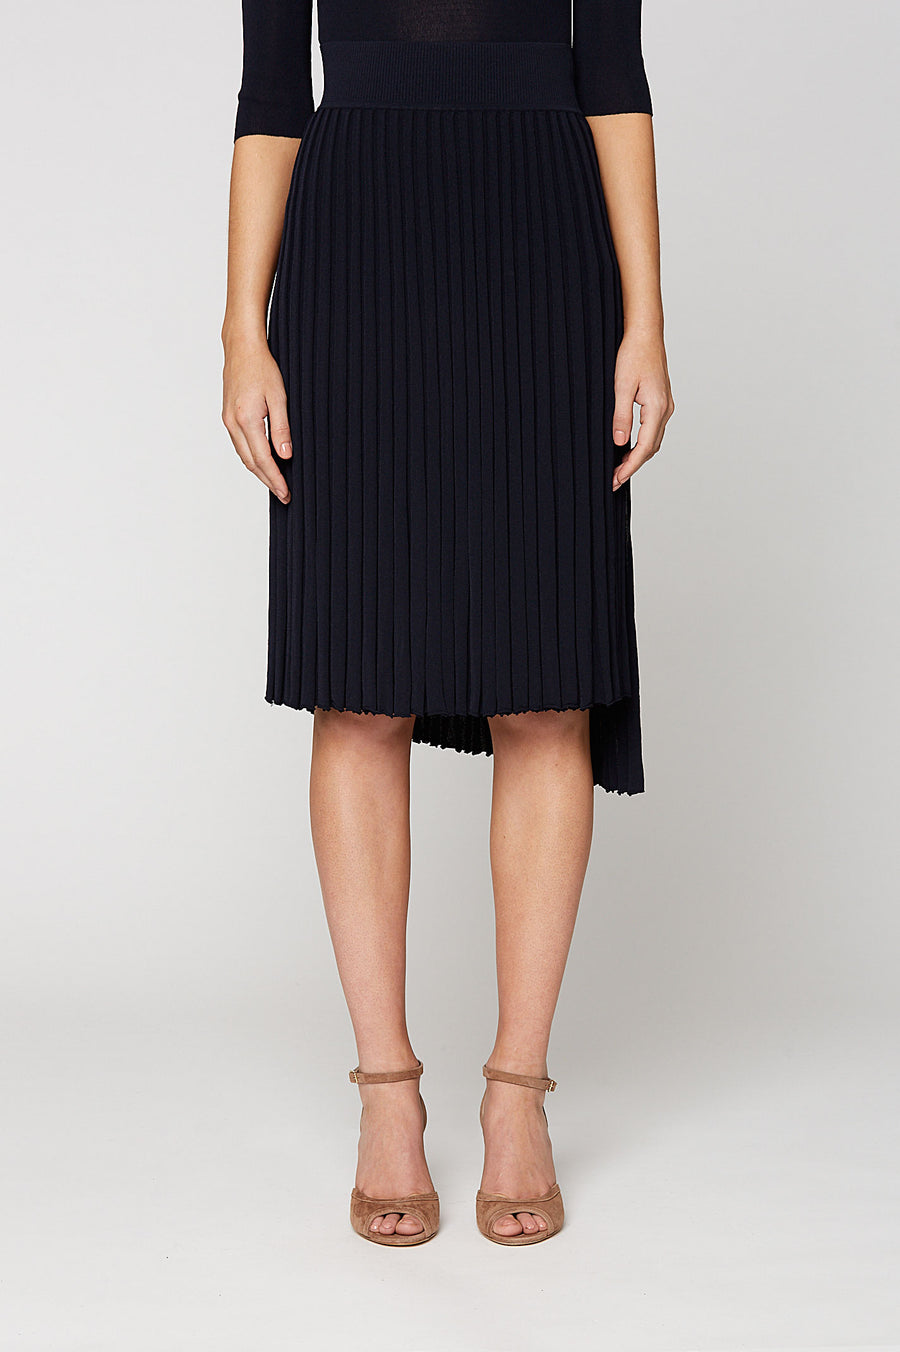 PLEATED RIB WRAP SKIRT 16, NAVY color